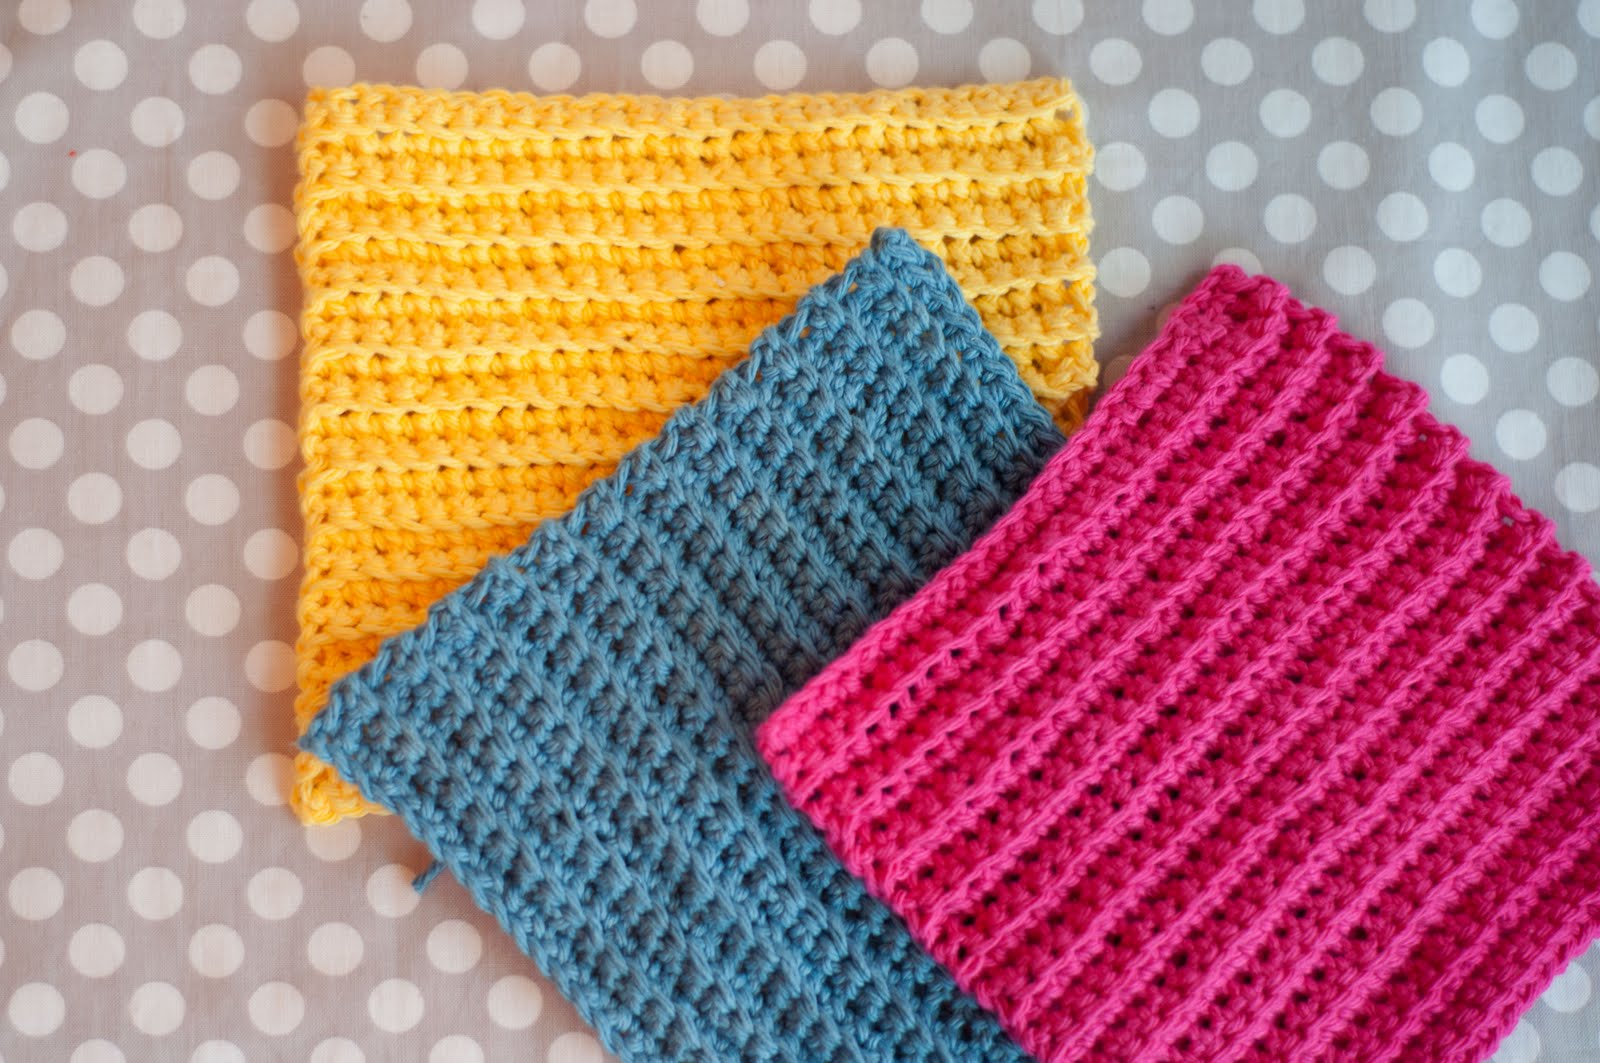 CROCHET WASHCLOTH PATTERN - Crochet Club